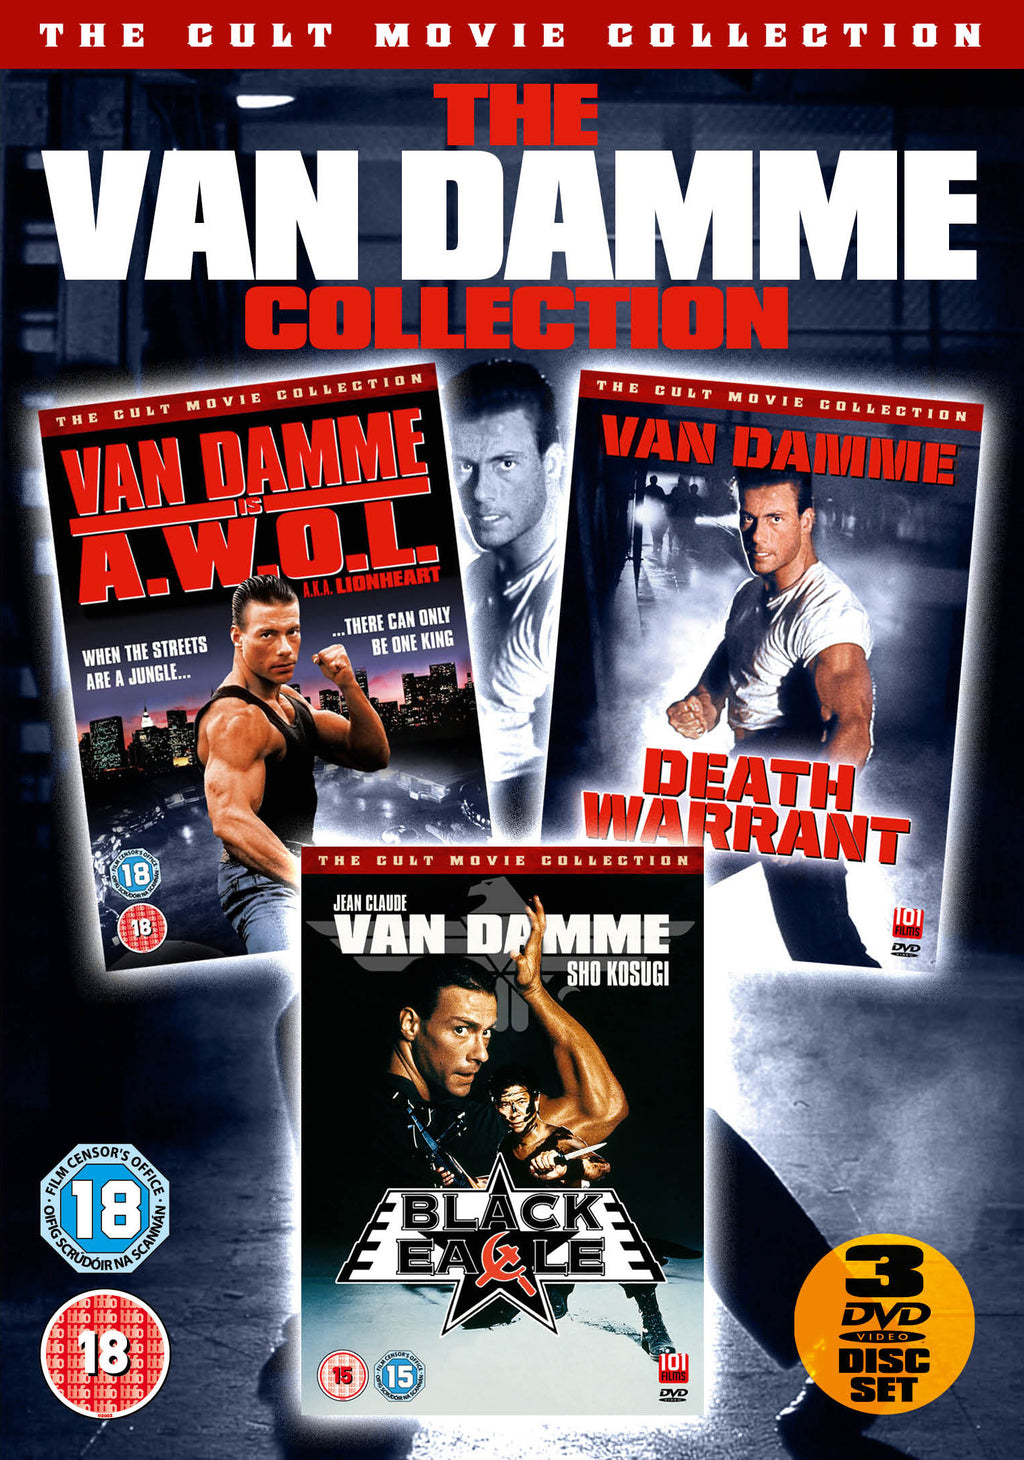 Van Damme Collection (DVD)